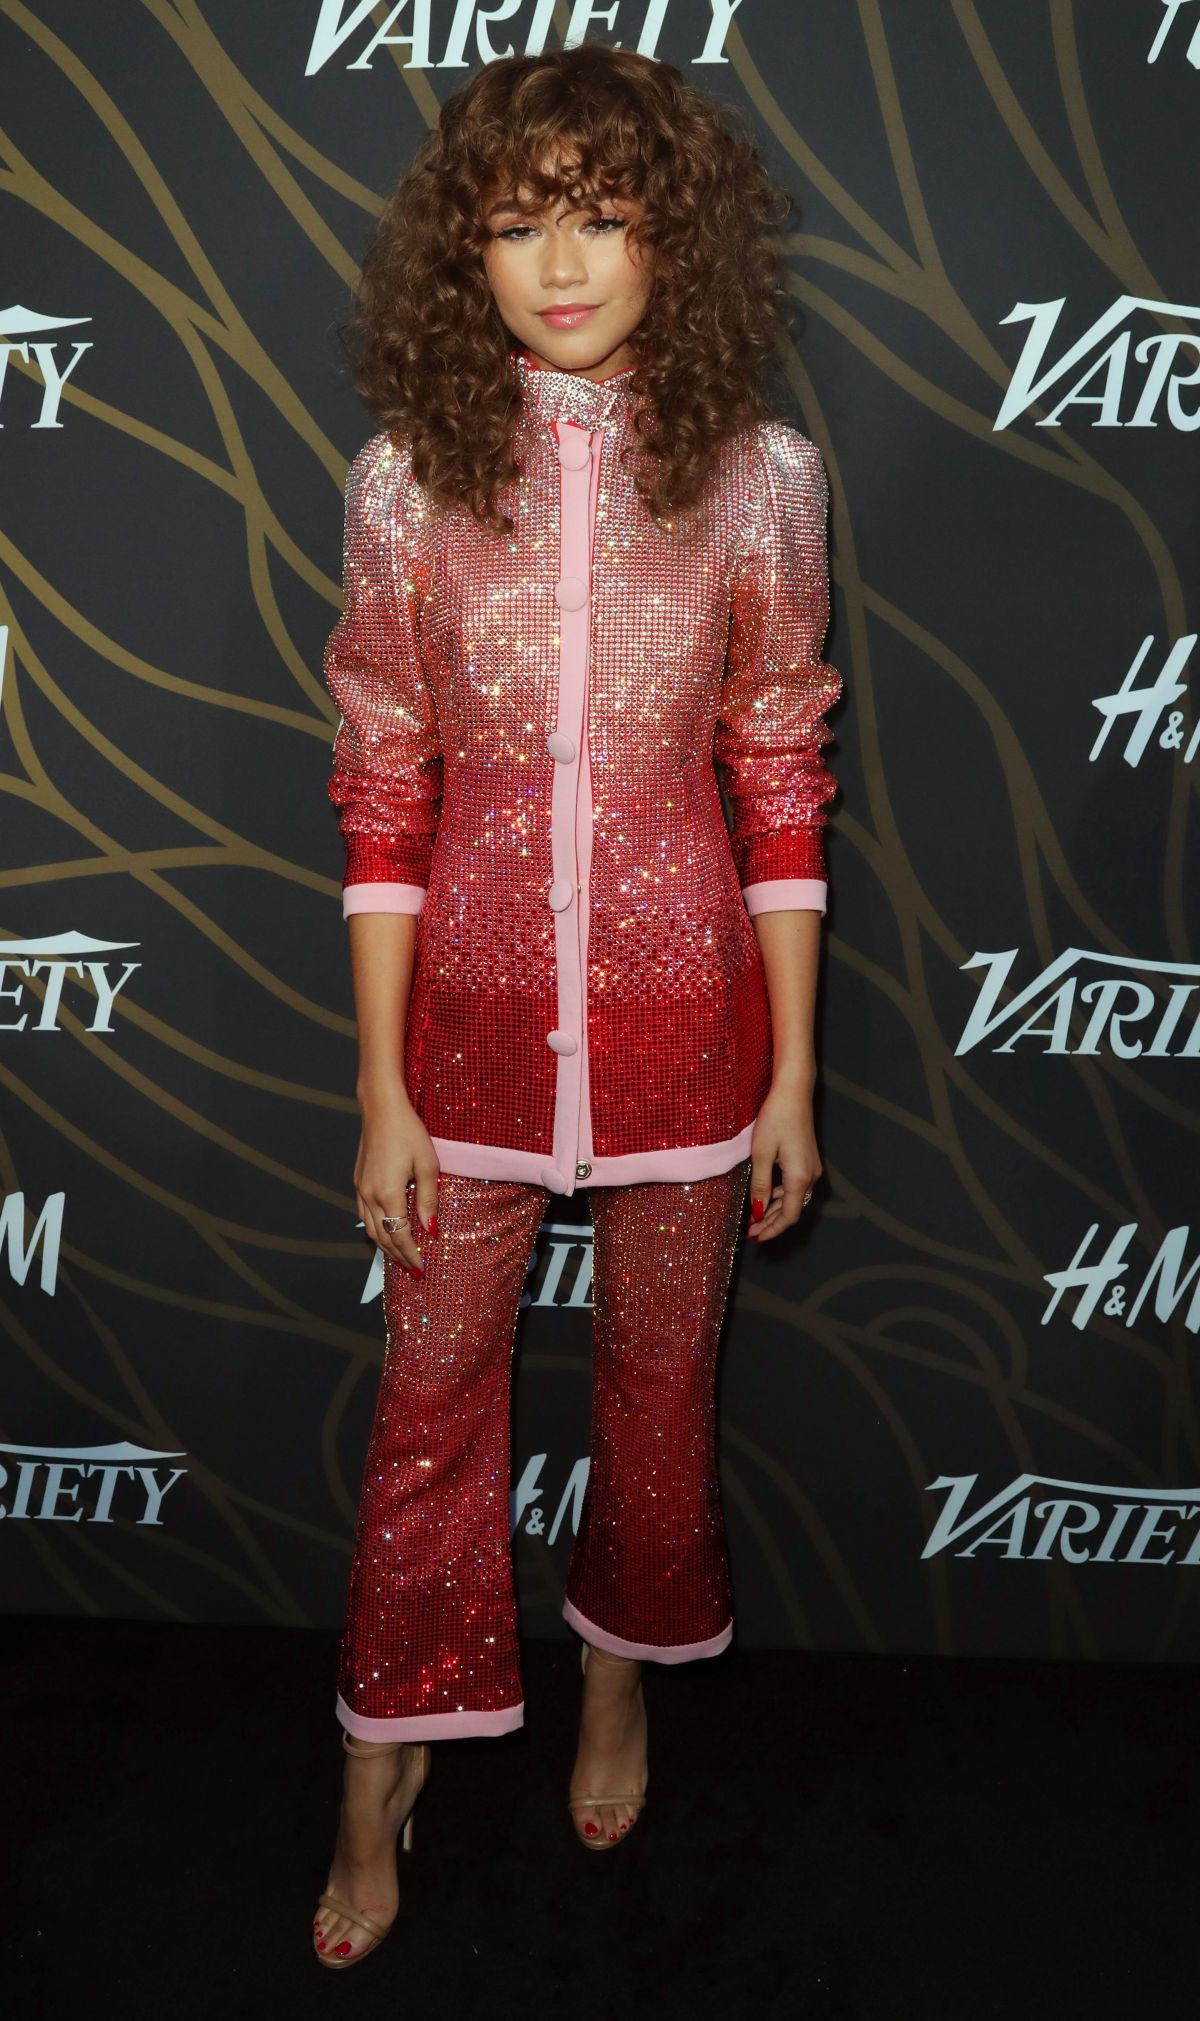 Zendaya Coleman At Variety Power Of Young Hollywood in LA